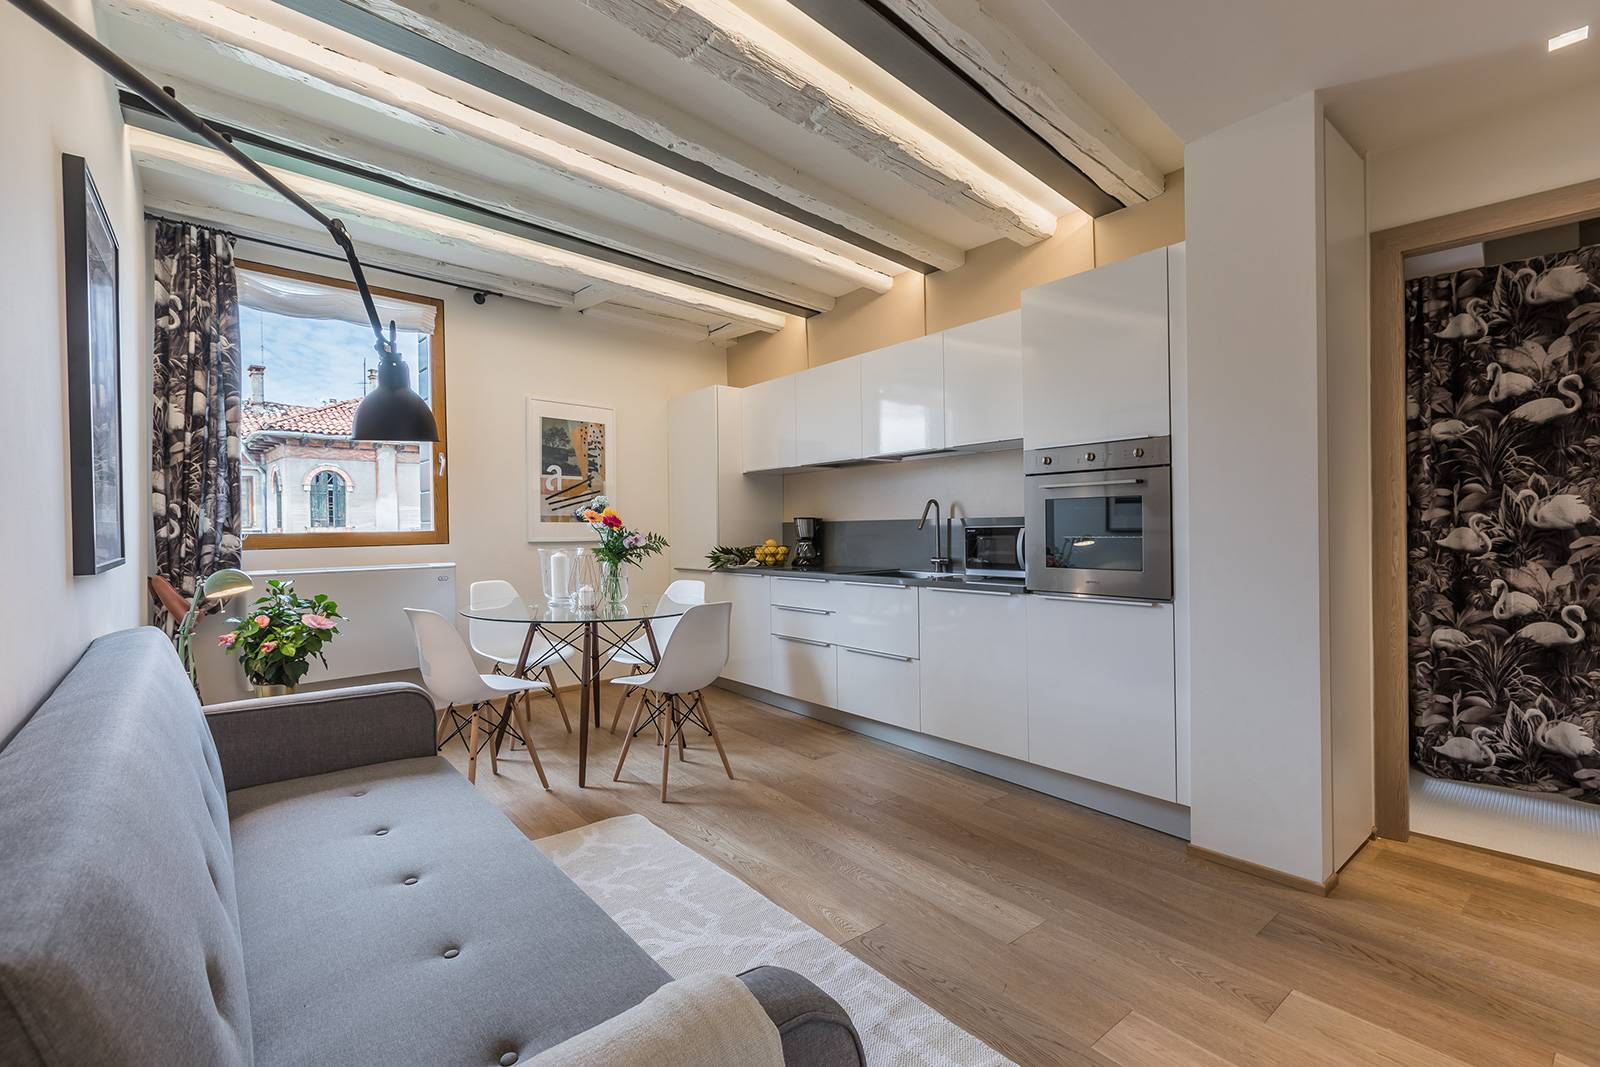 nice parquet flooring, wooden beams, fully equipped kitchen